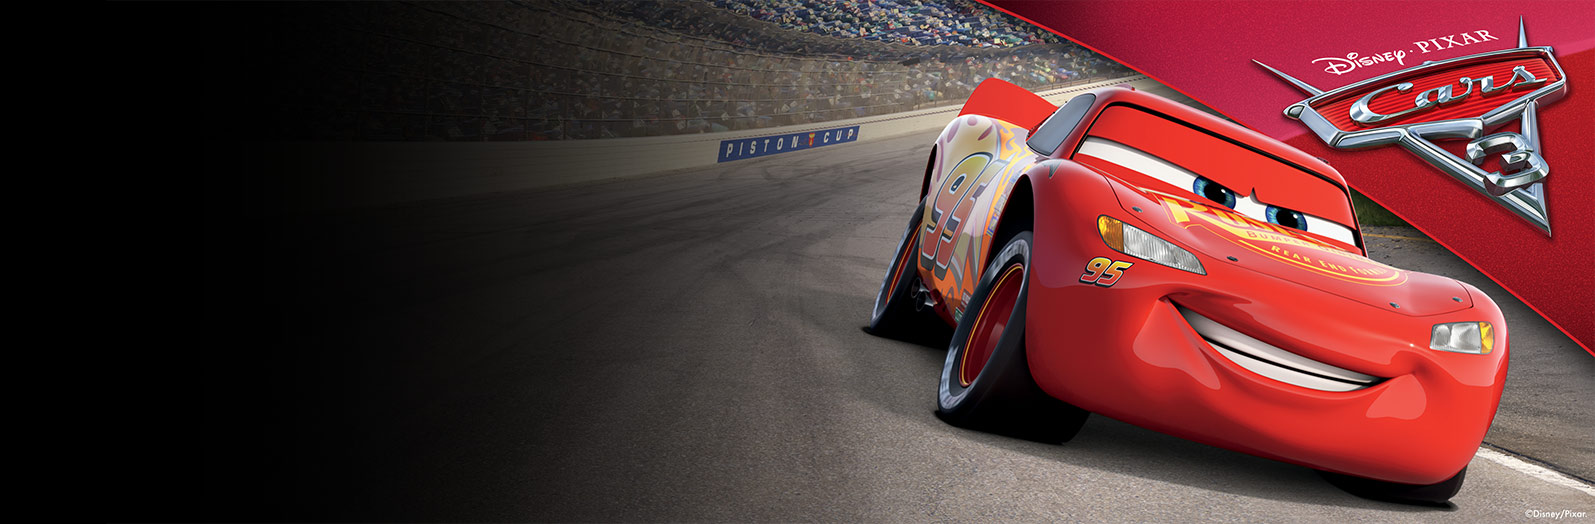 buckle up for a high speed all action return to the world of cars